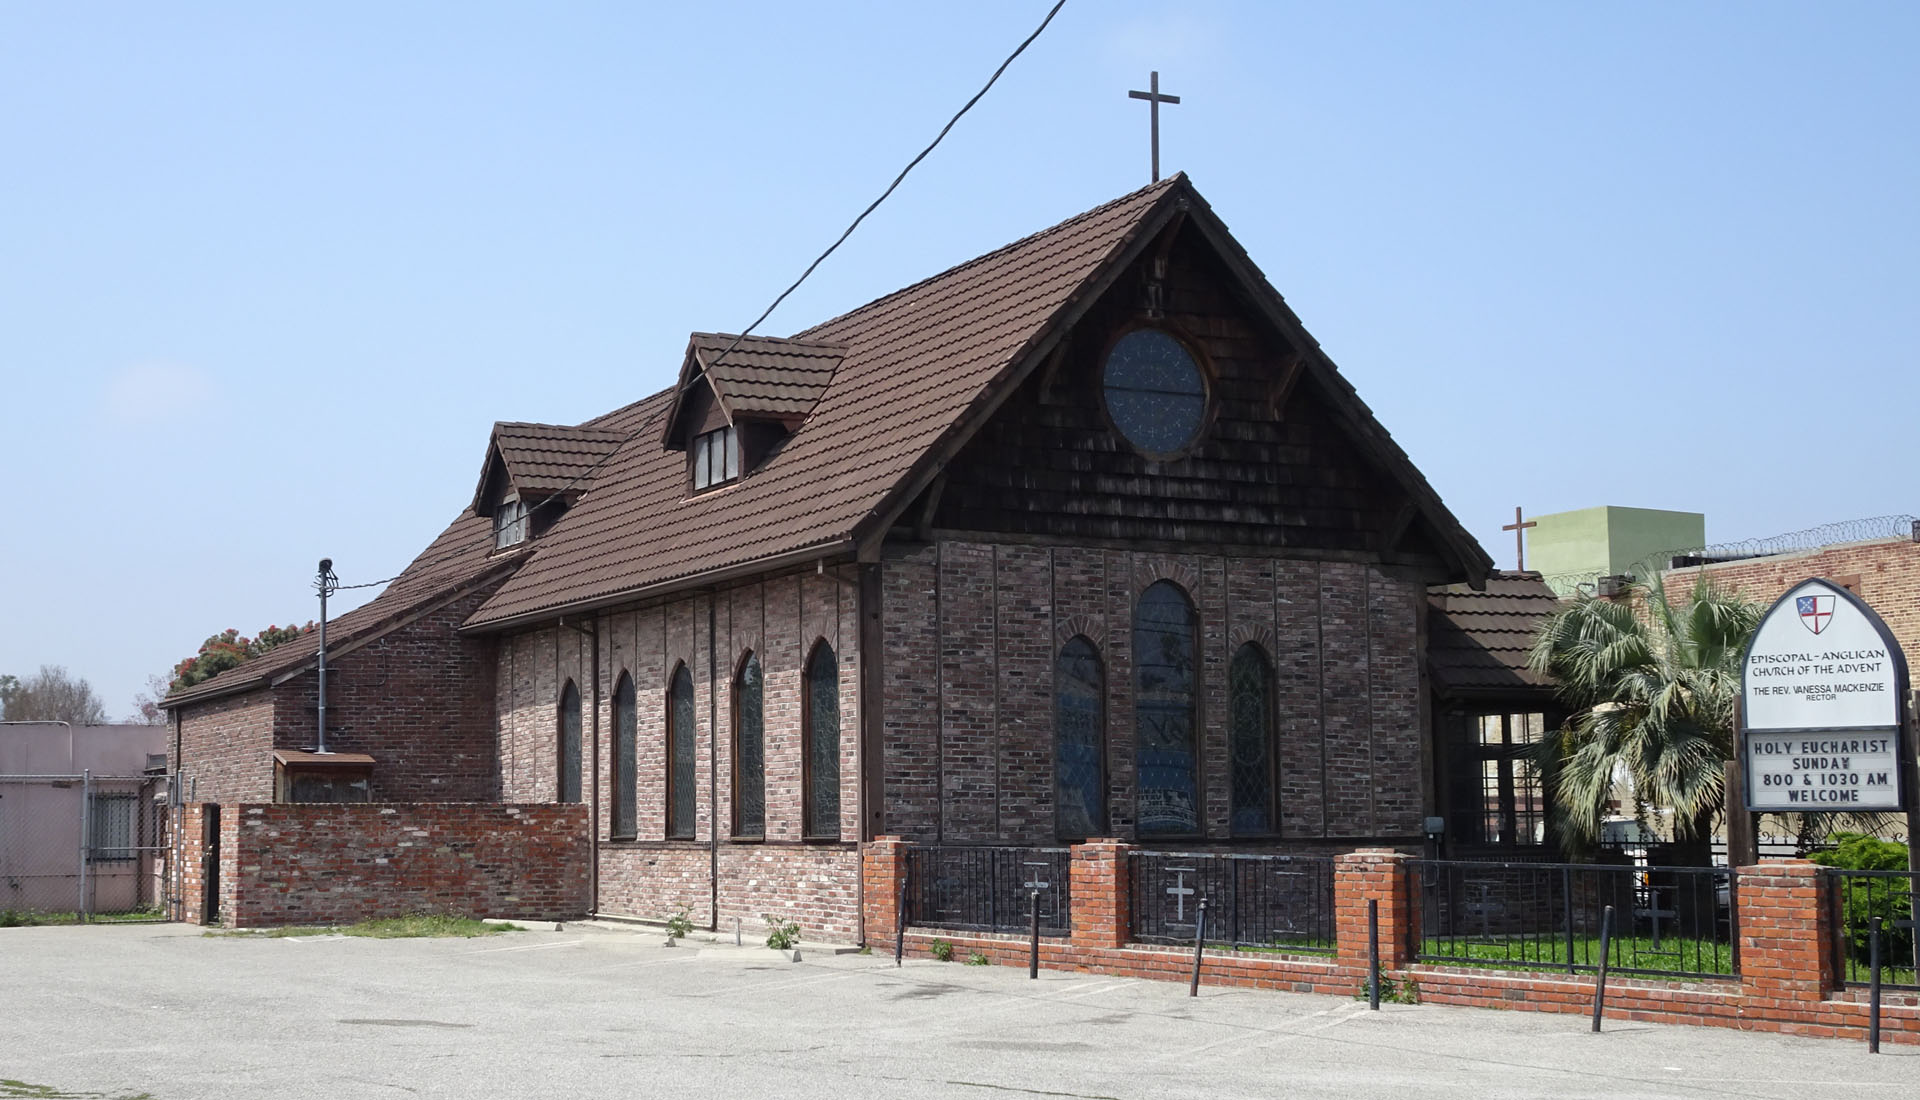 Episcopal Anglican Church of the Advent